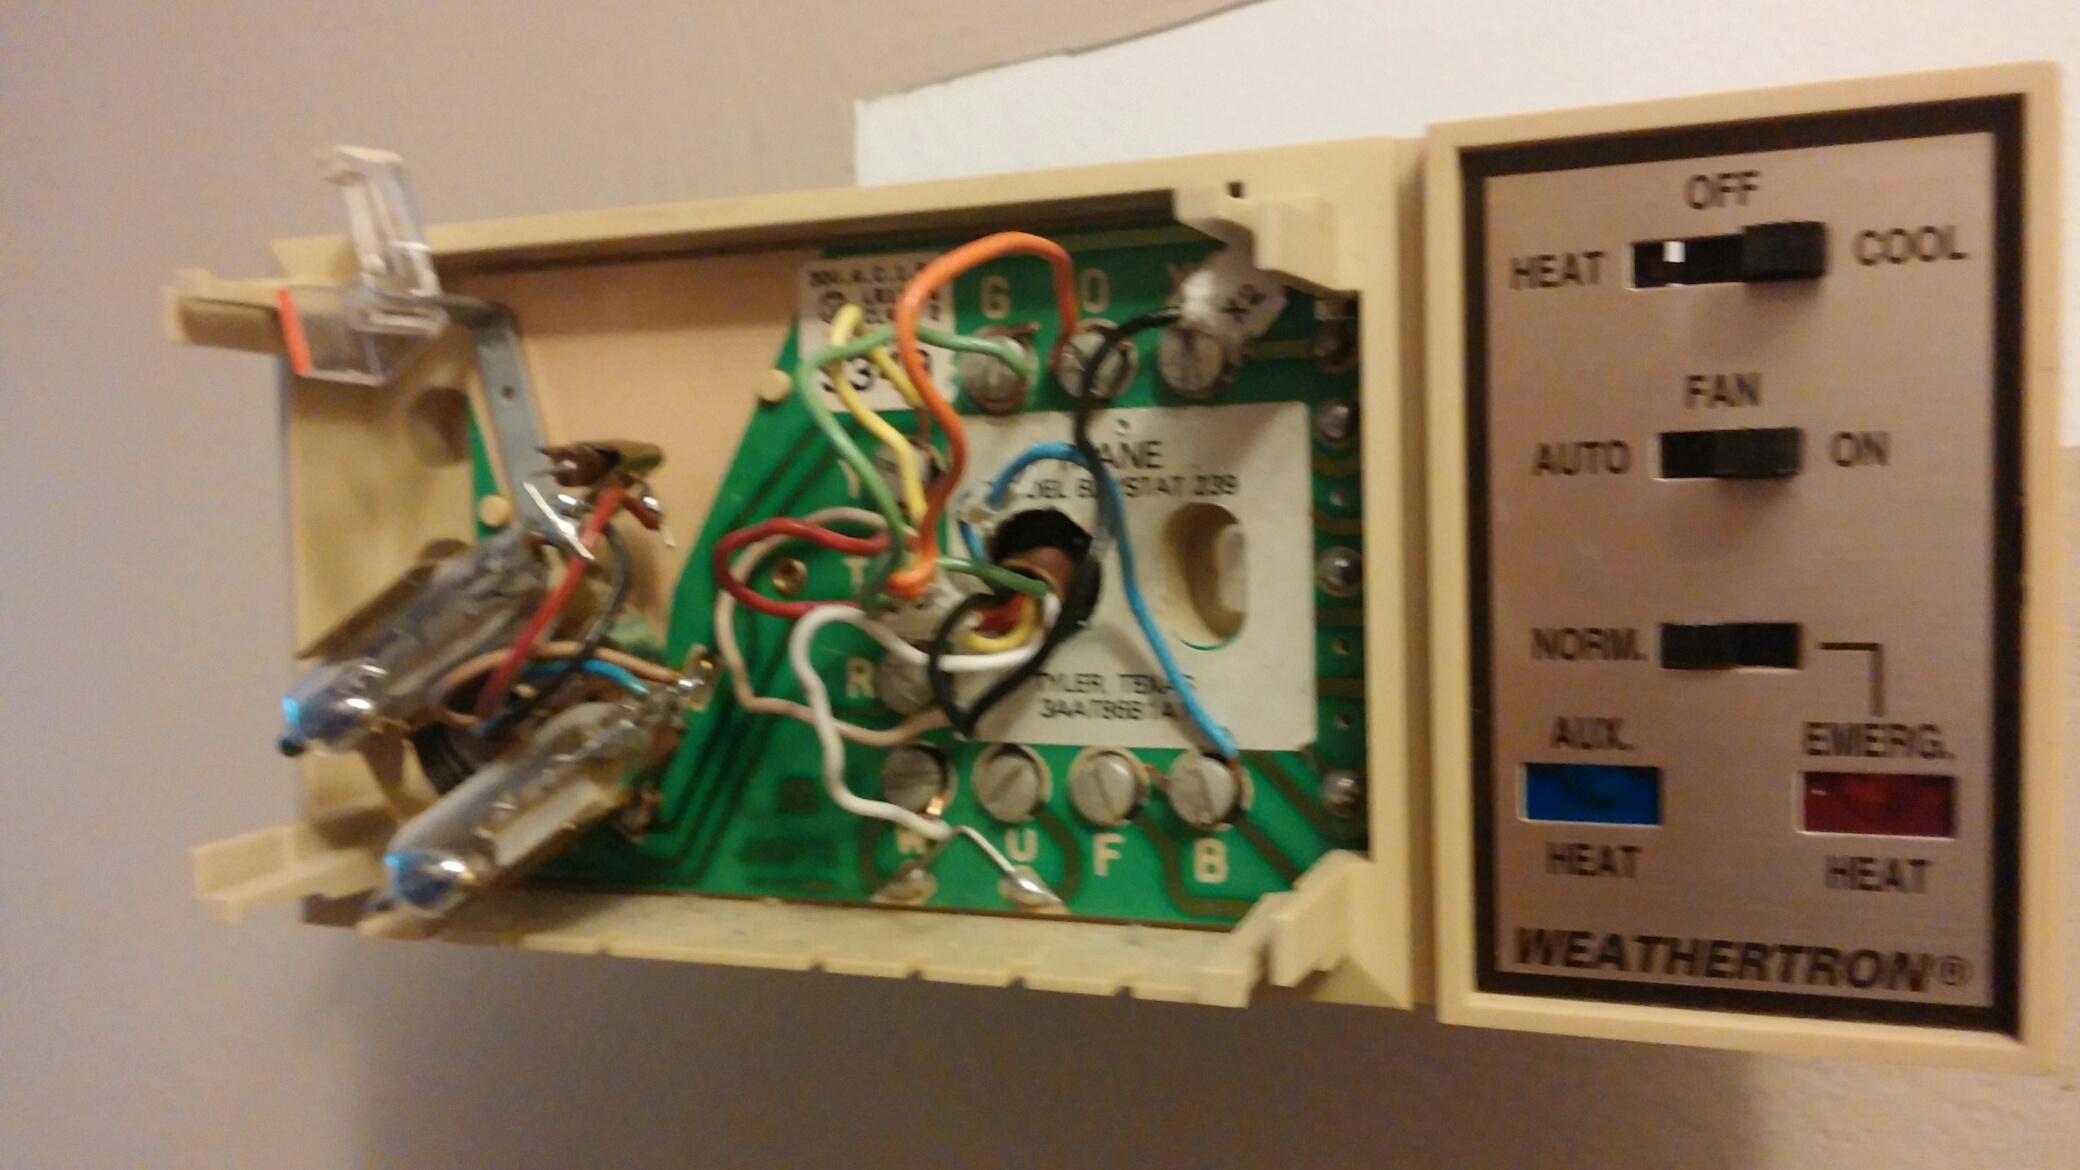 White Rodgers Thermostat Wiring 1f82 51 I Am Working On An Xe1000 Trane From 1993 Know Probably Past Its 0622171946a Resized